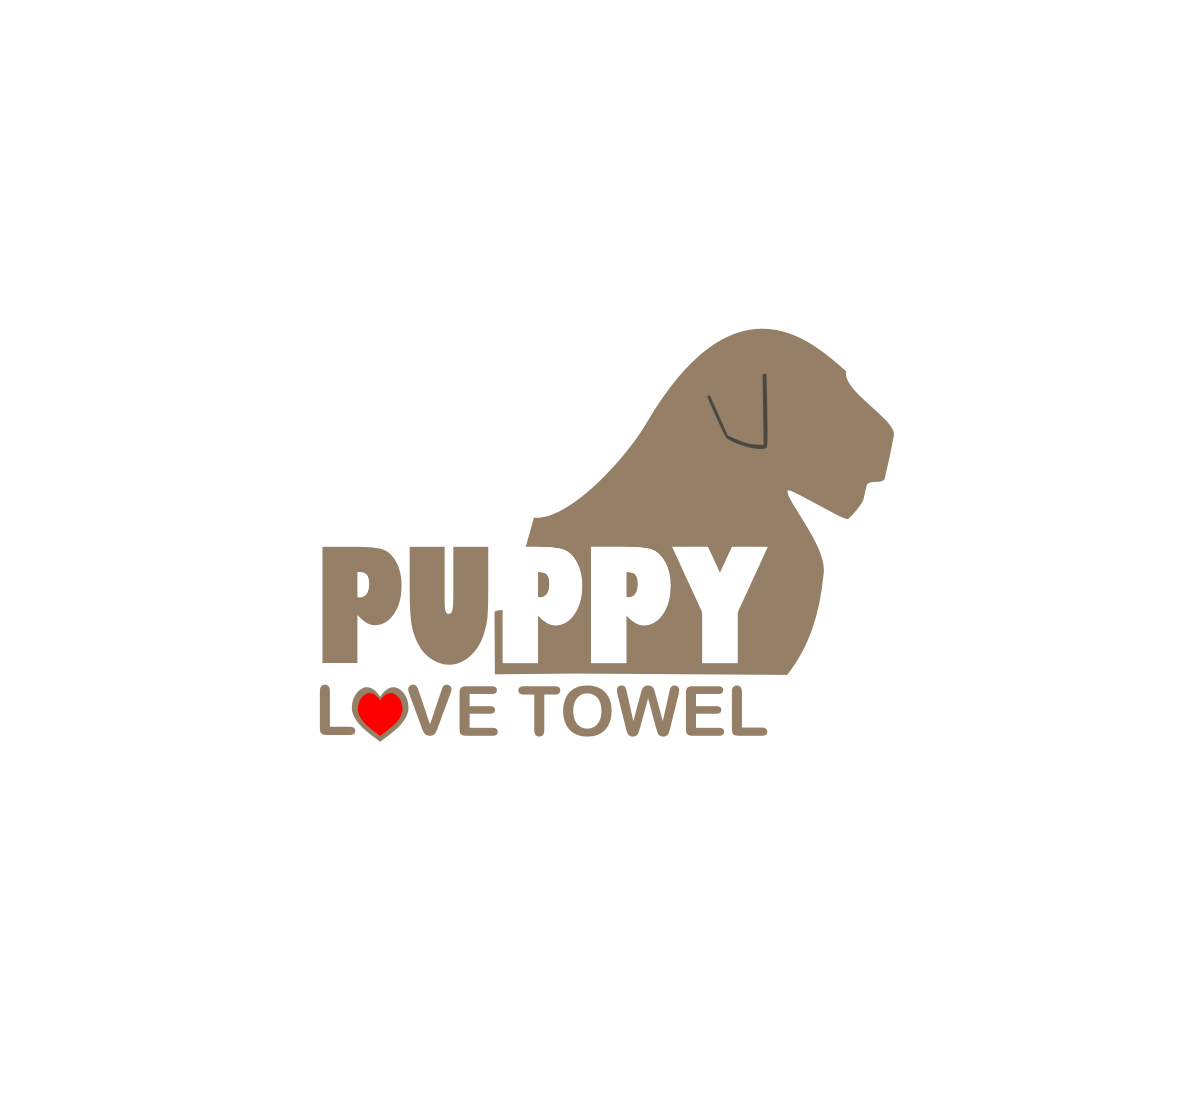 Logo Design by Nthus Nthis - Entry No. 25 in the Logo Design Contest Artistic Logo Design for Puppy Love Towels.